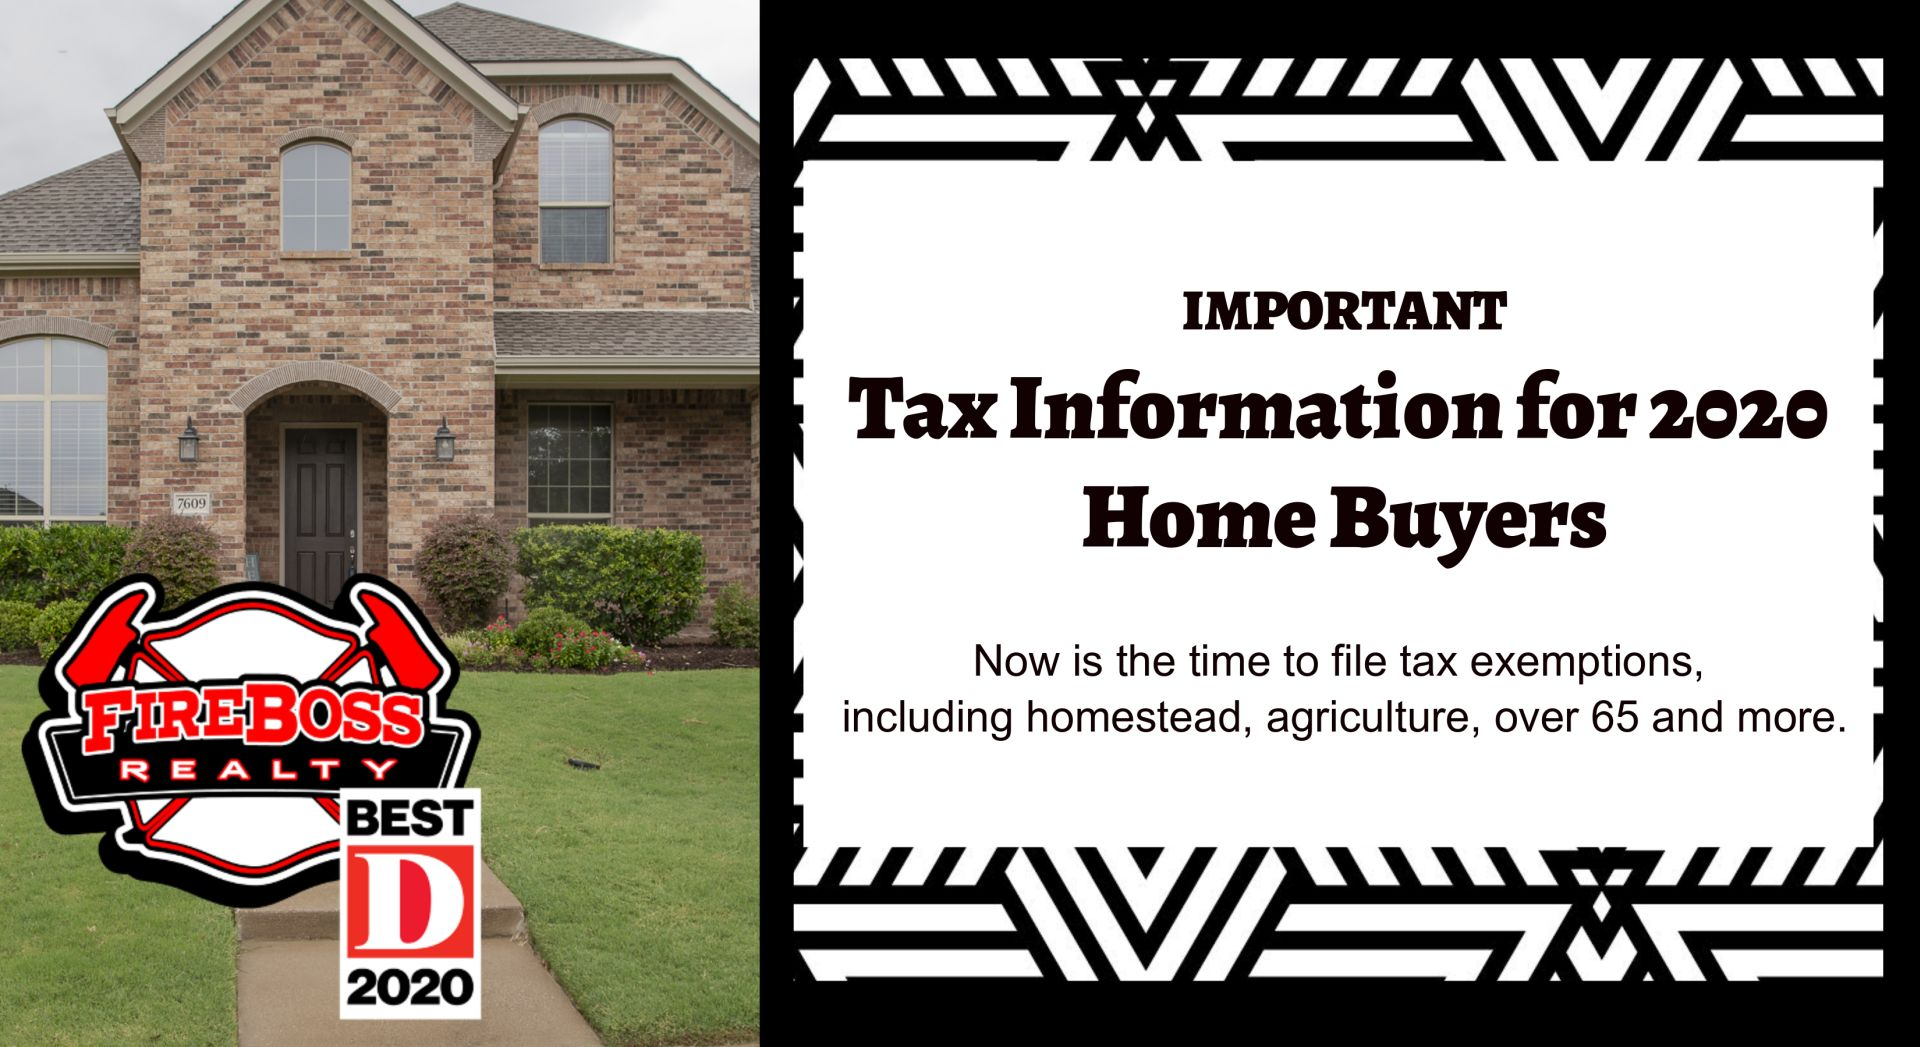 Important Tax Information for 2020 Home Buyers